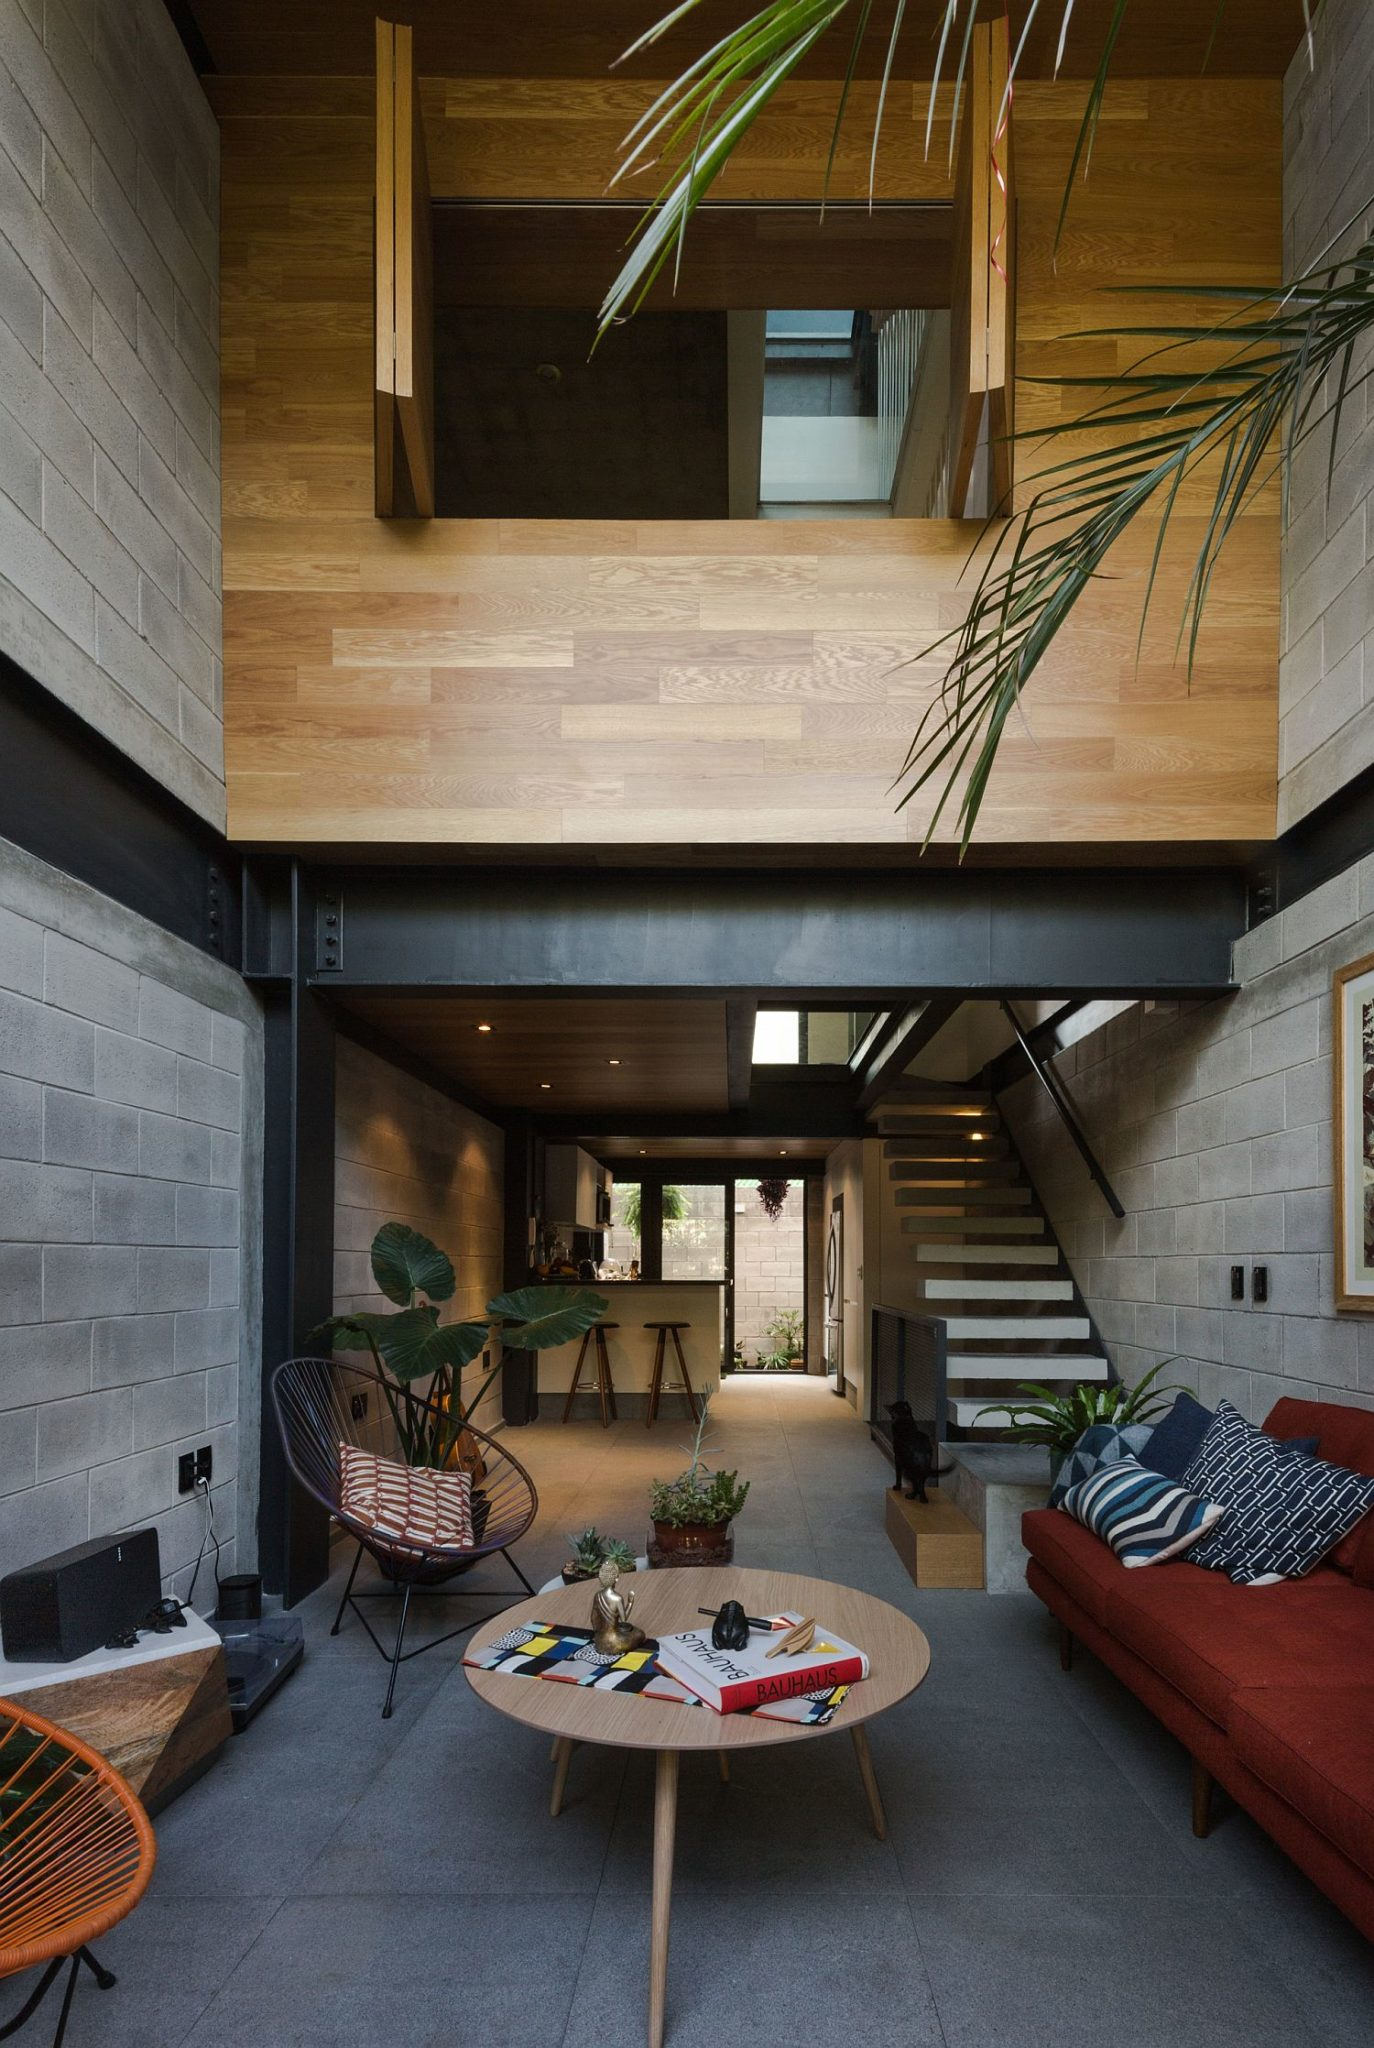 Wooden top level of the townhouse with private spaces